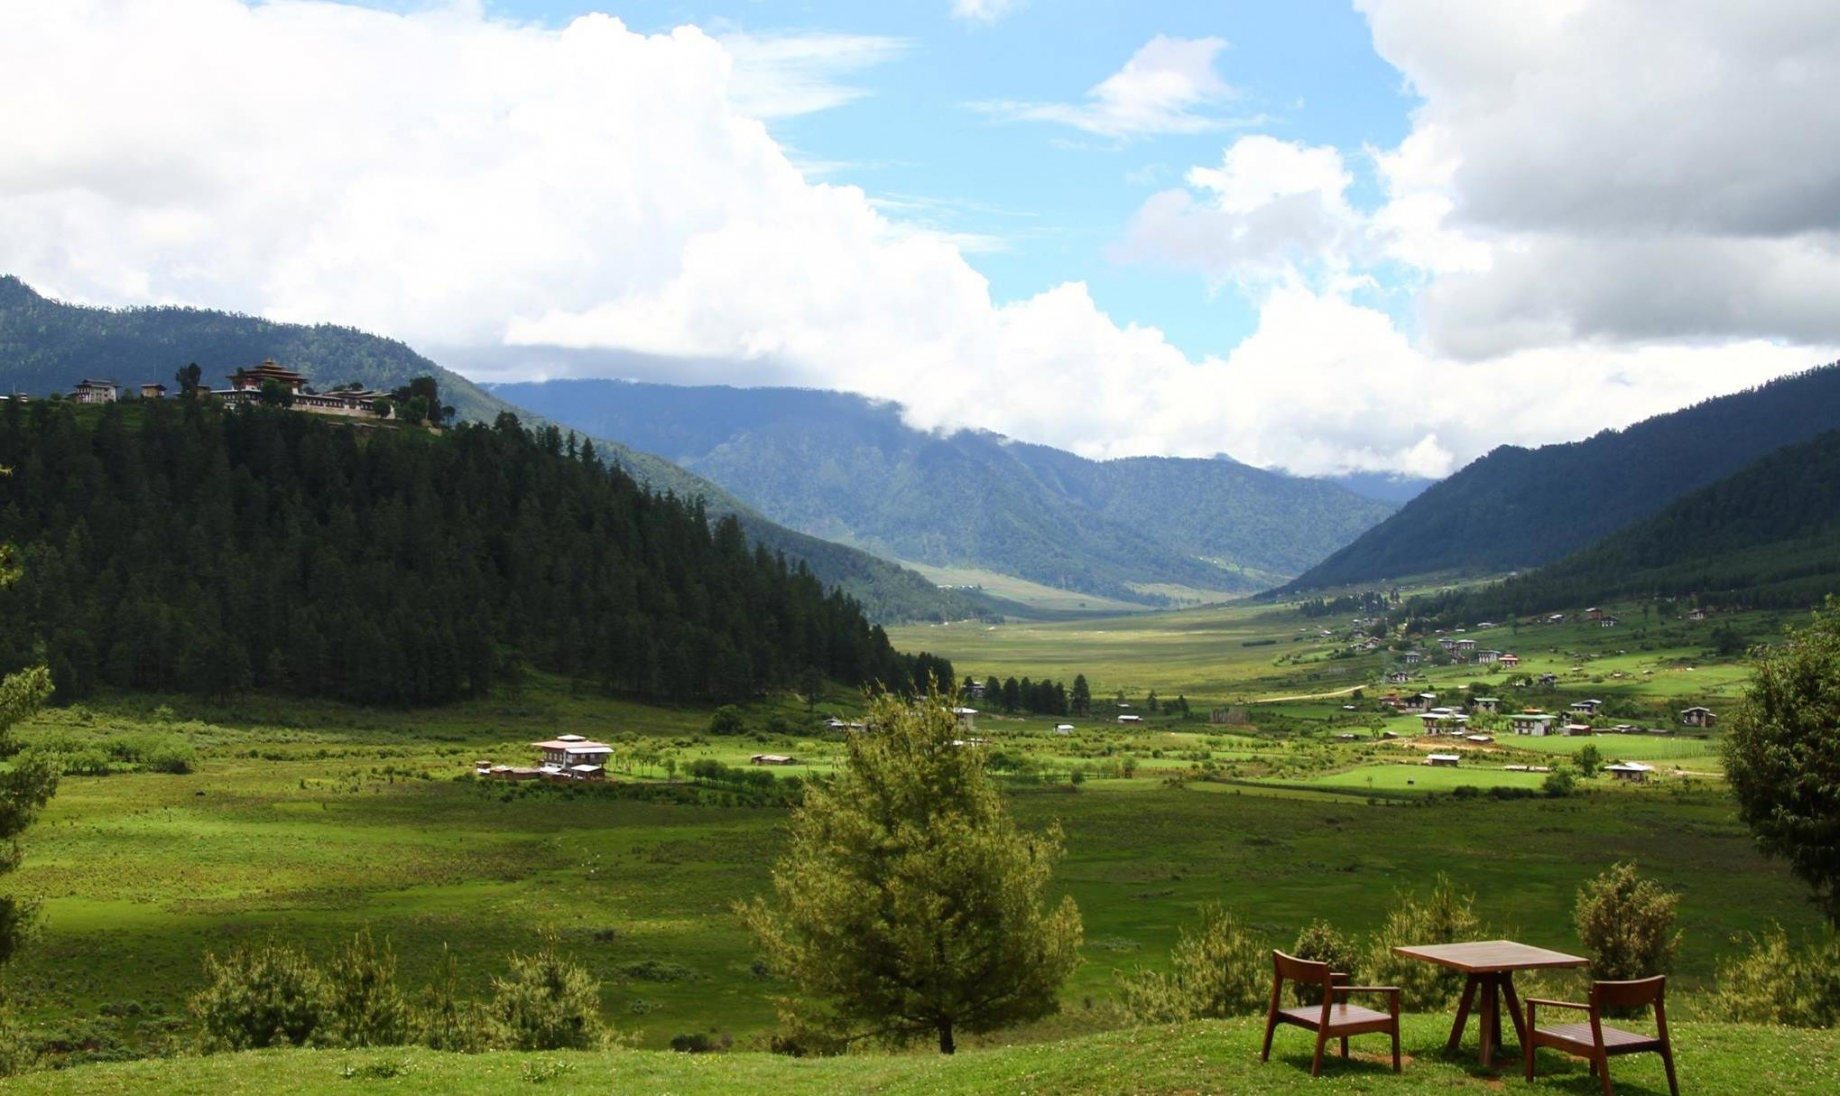 Community Based Tourism : The Essence of Bhutan